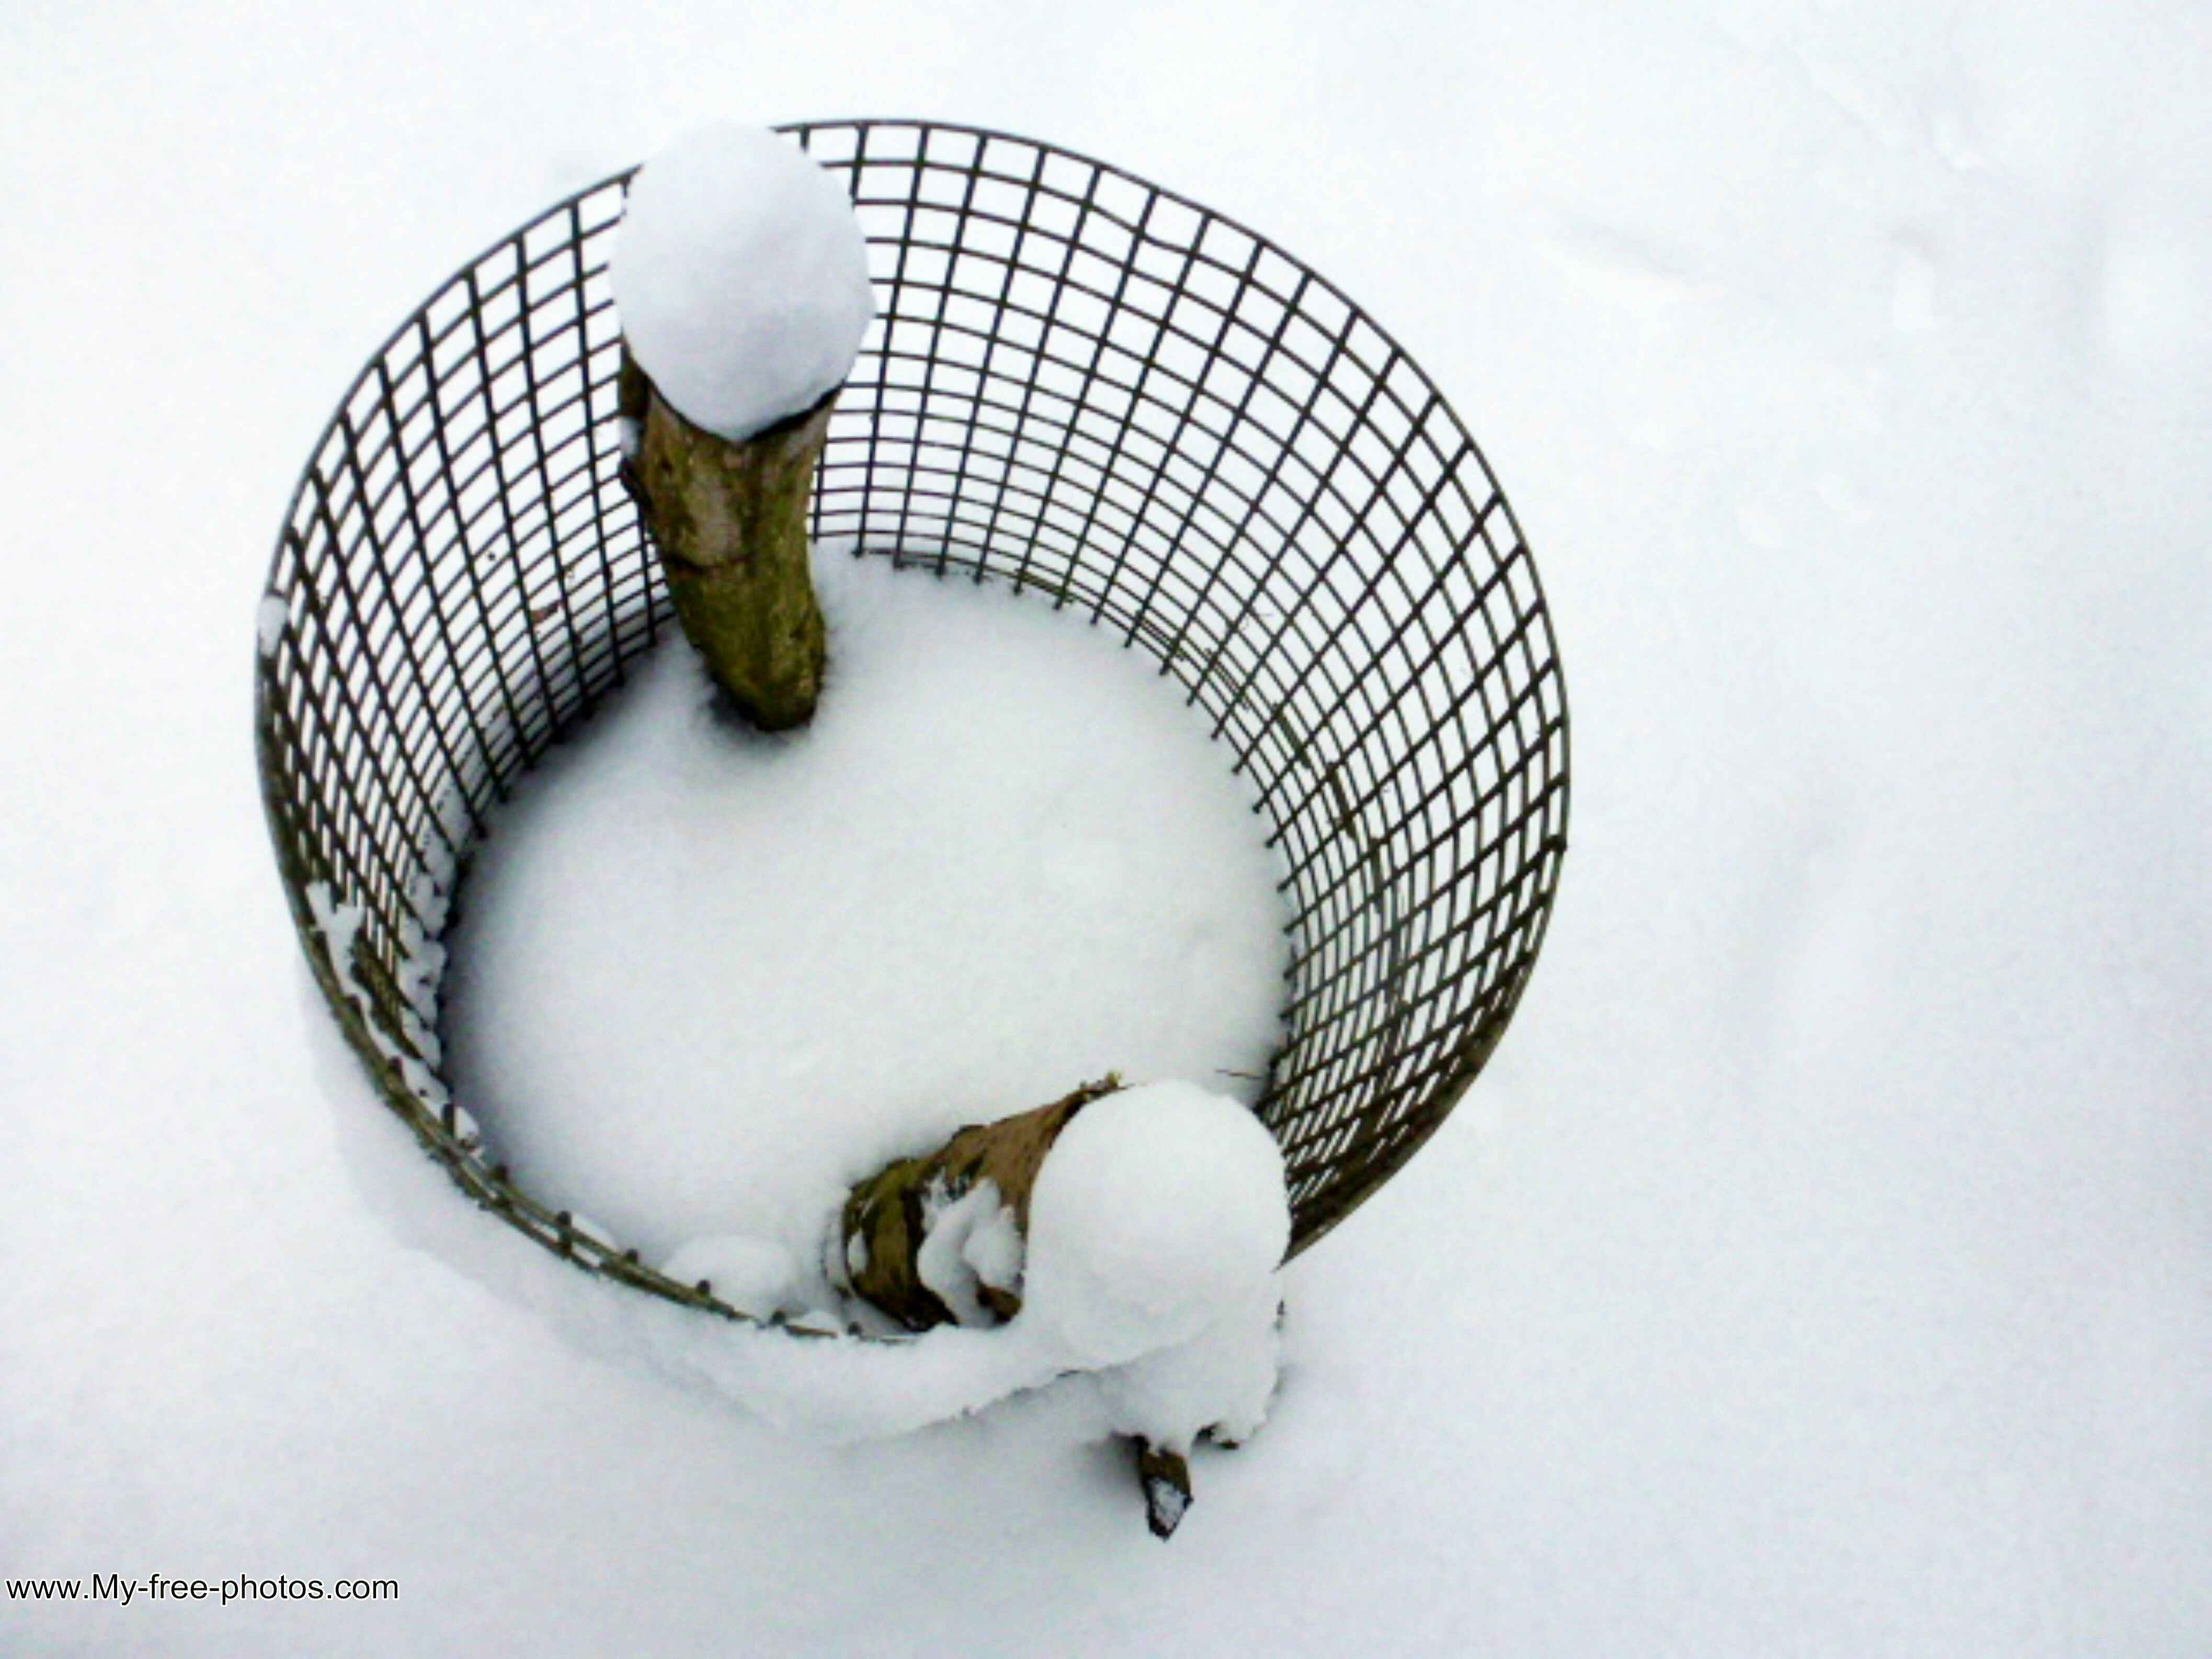 basket in snow